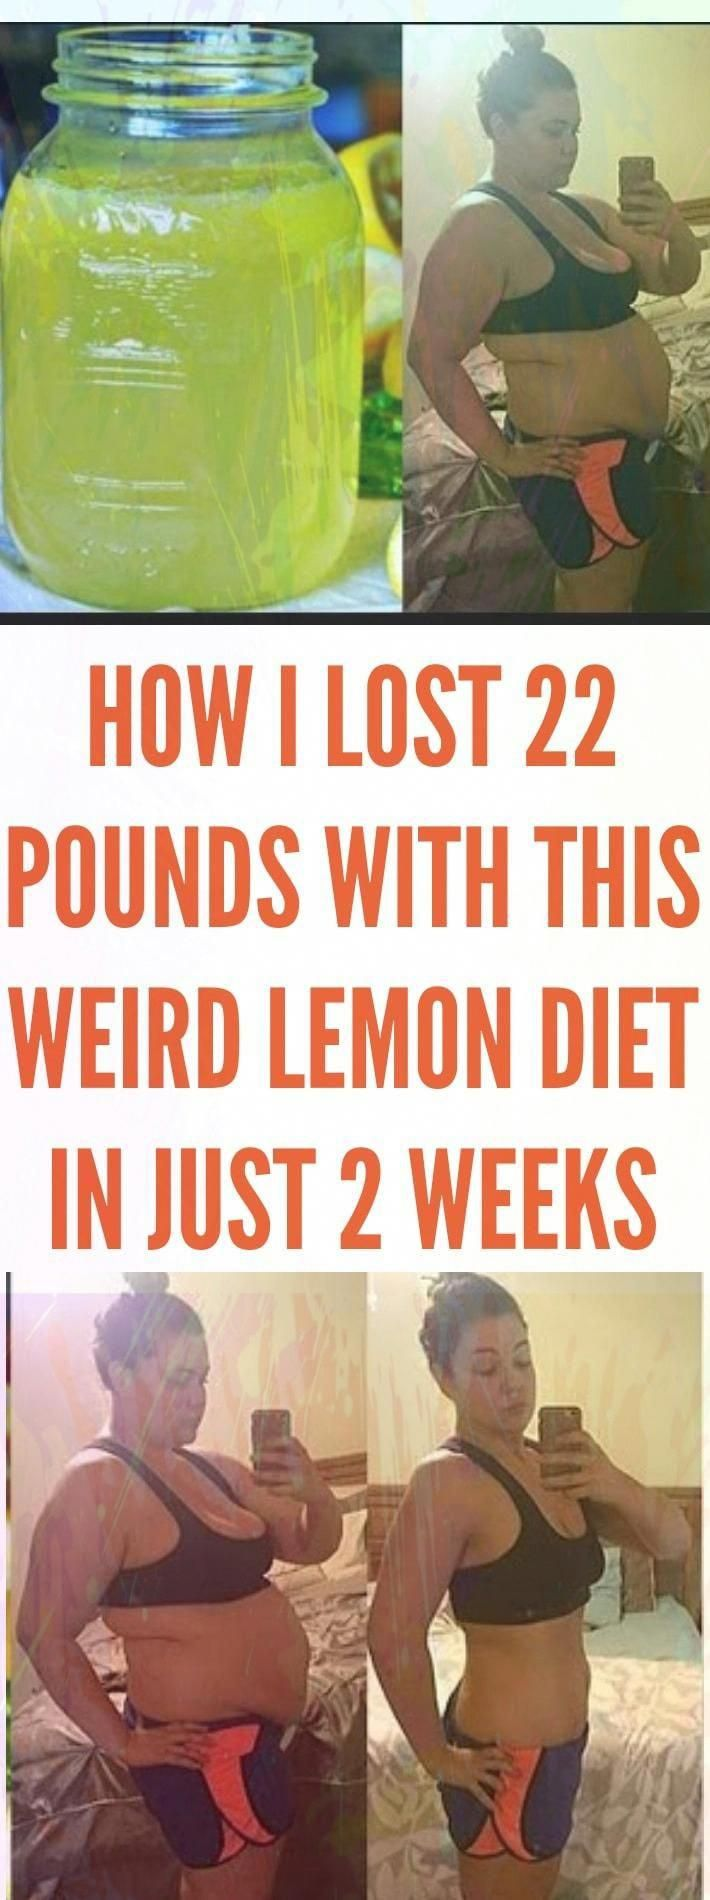 Weight Loss Tips: How I Lost 22 Pounds With This Weird Lemon Diet in Just 2 Weeks#health #fitness #h...